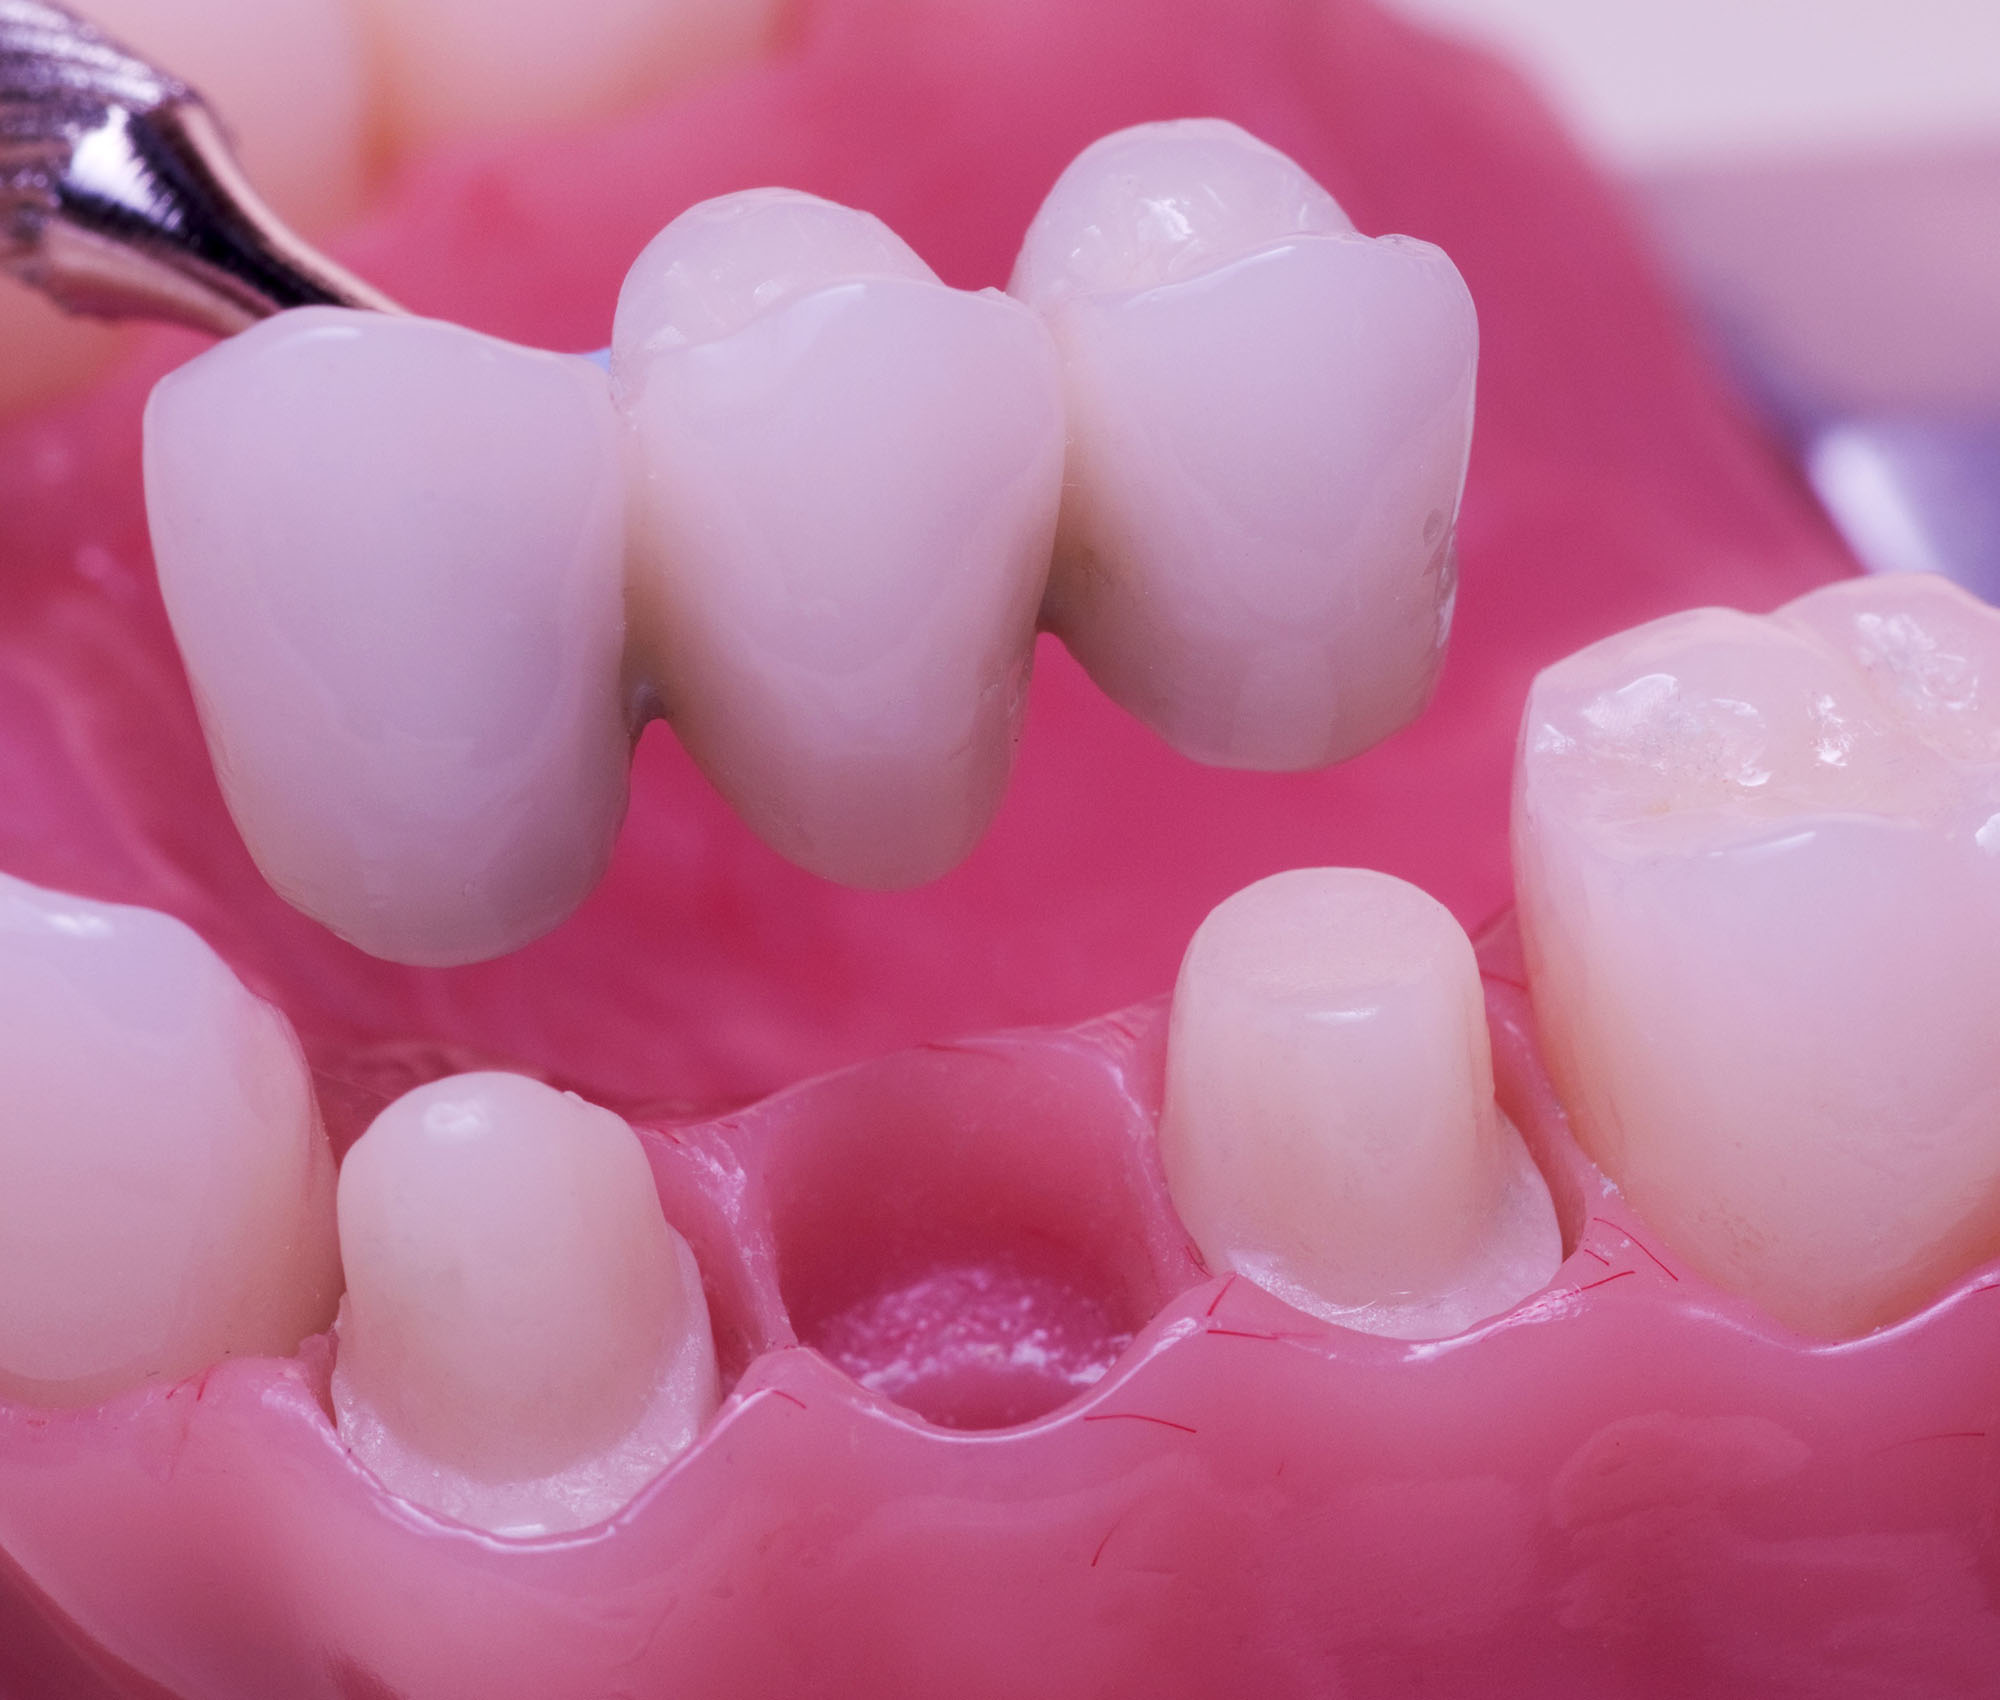 62-Fixed-Artificial-Teeth-Image-1